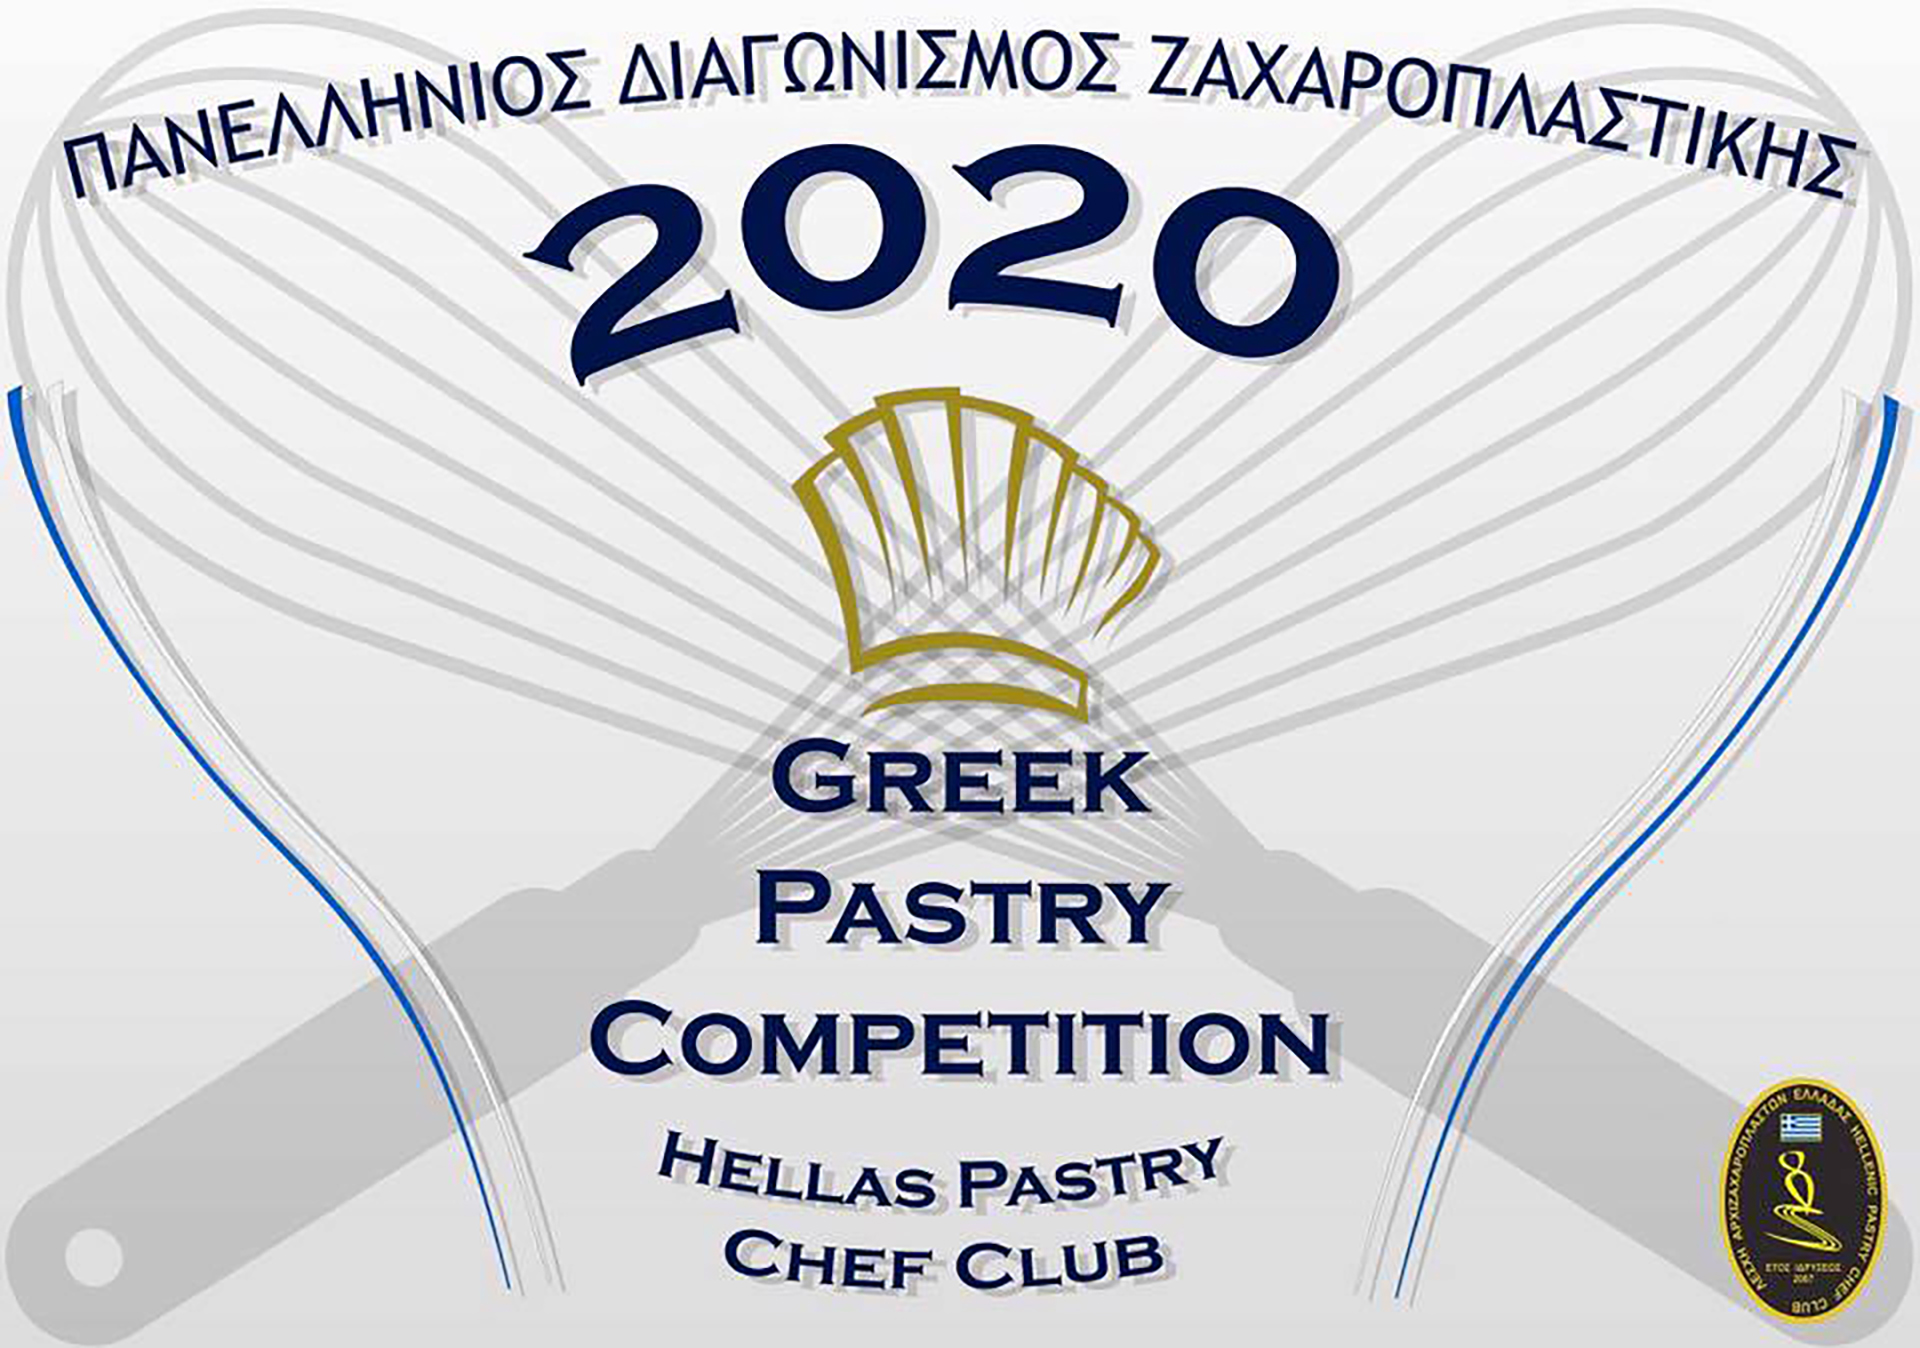 greek pastry competition